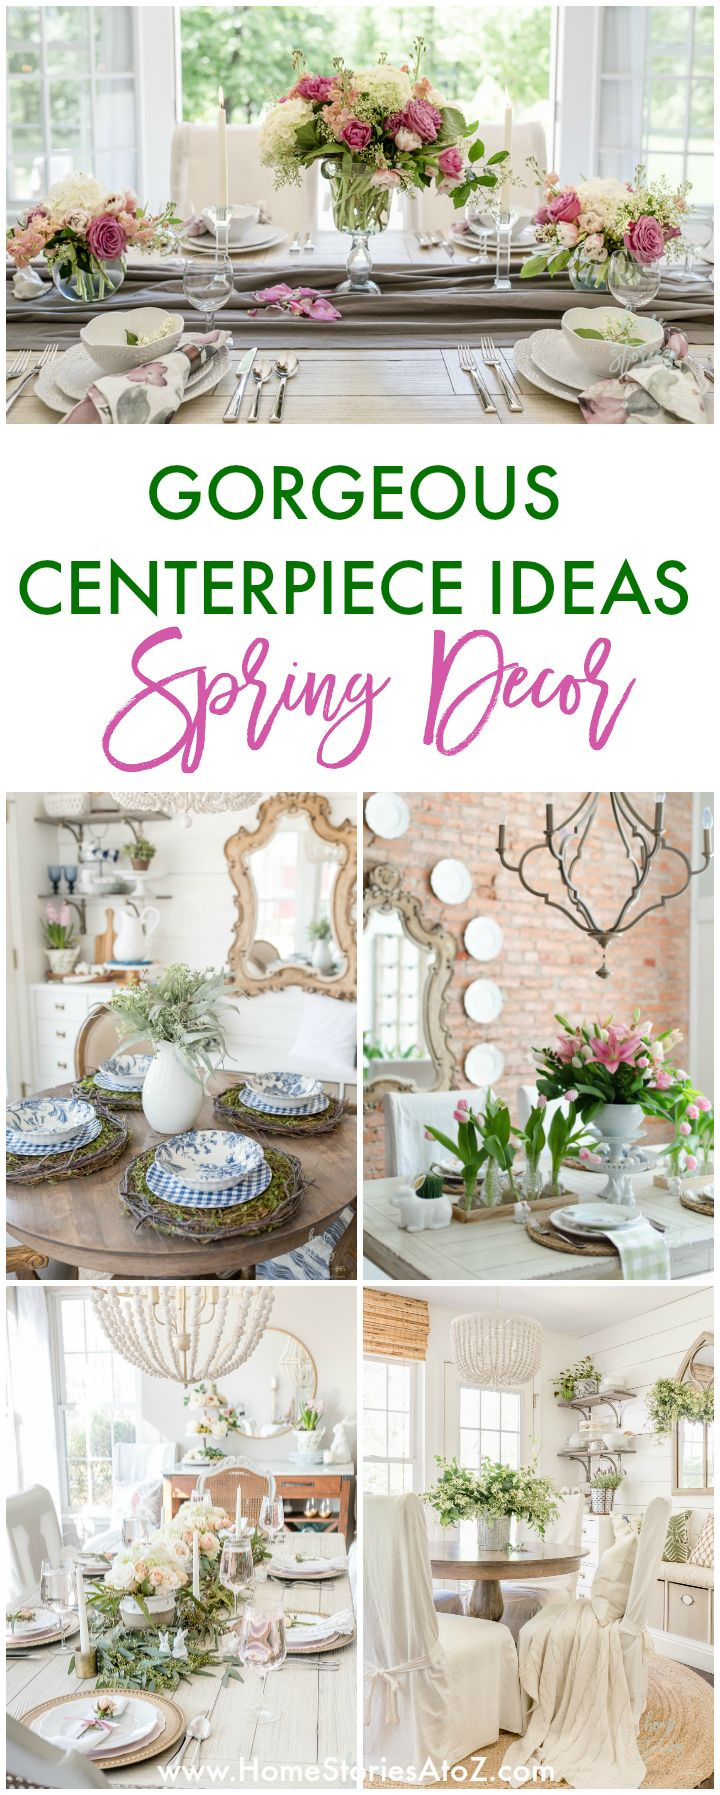 Spring Decor Ideas Gorgeous Centerpiece Ideas For Your Table In